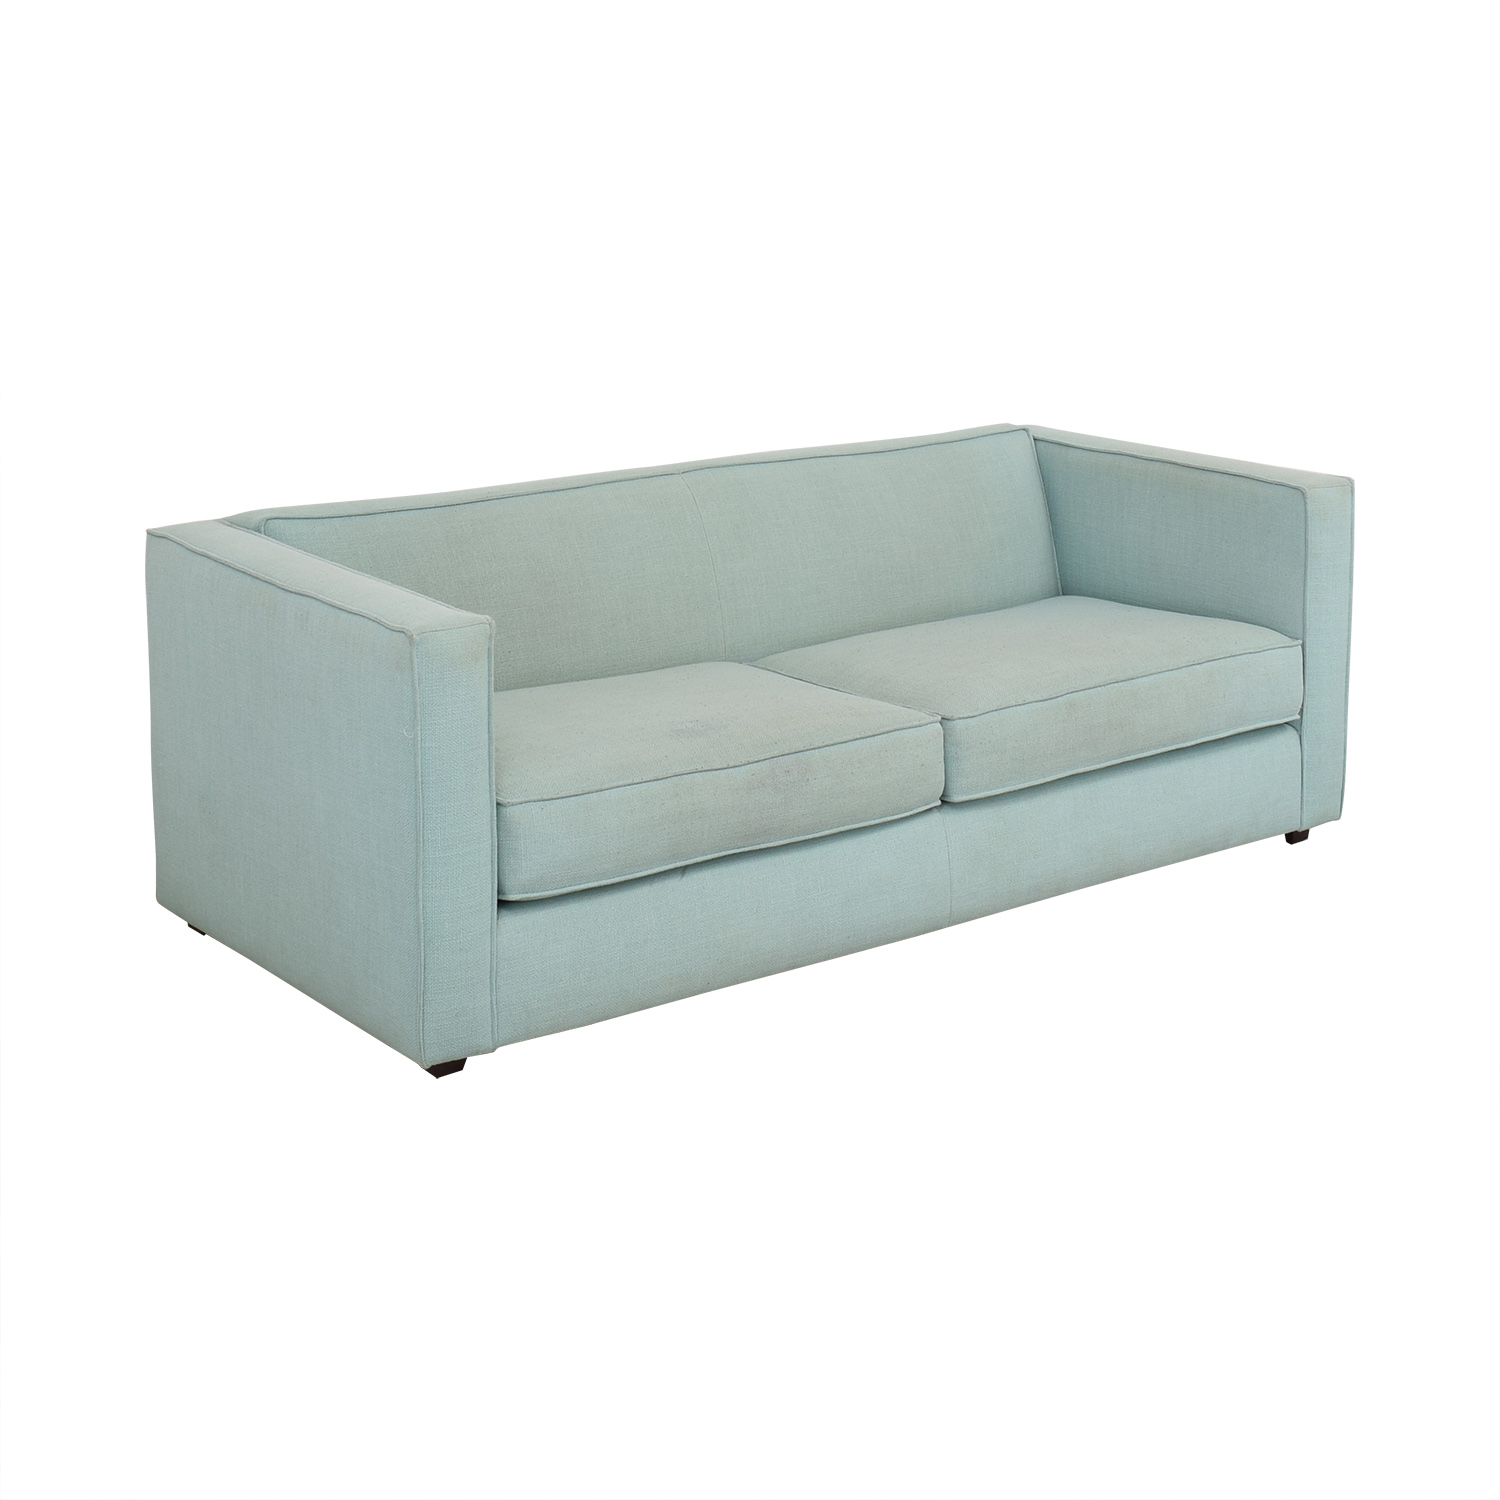 CB2 CB2 Club Sofa coupon